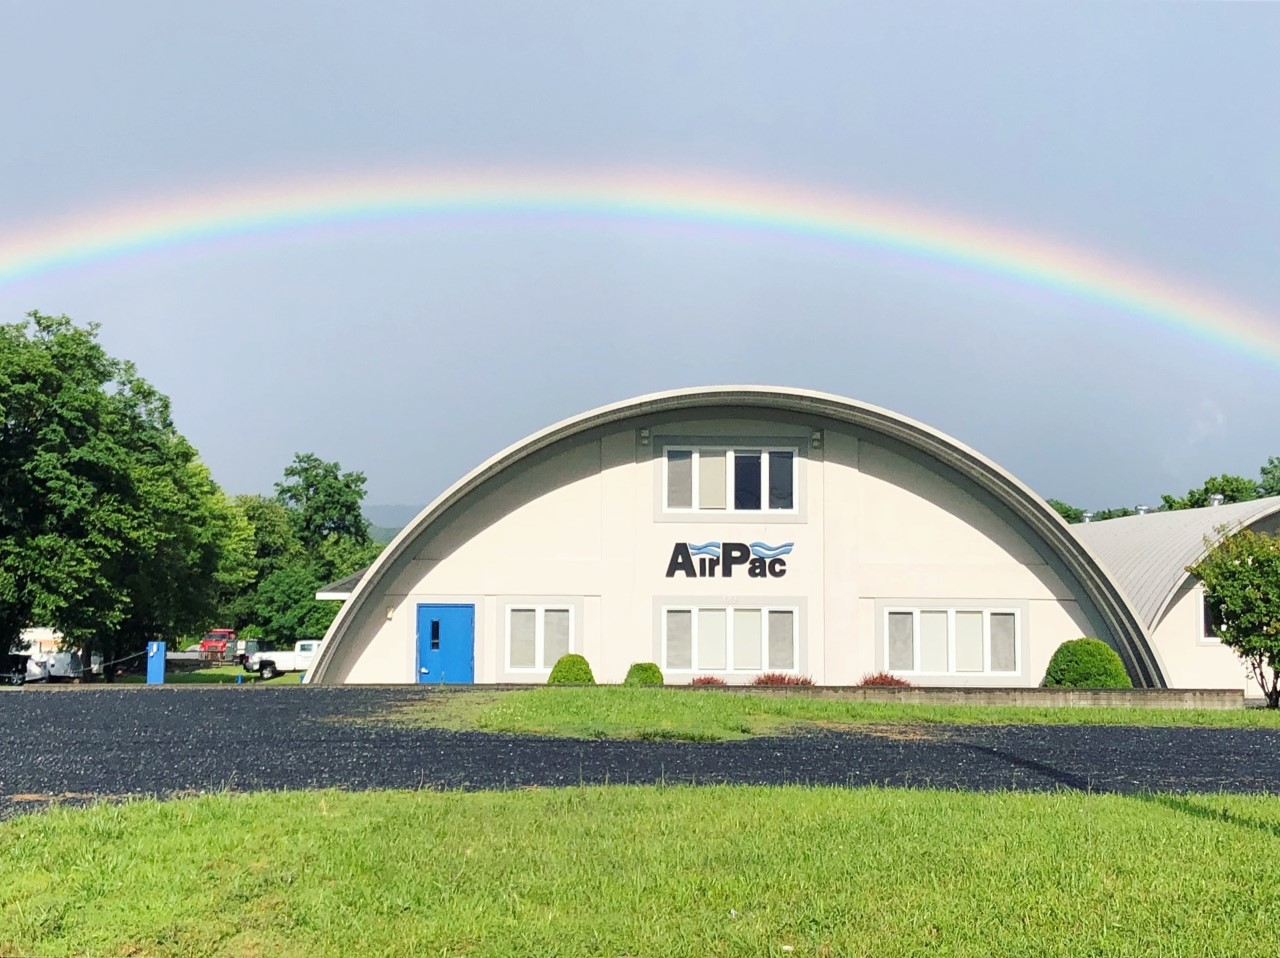 AirPac office with rainbow